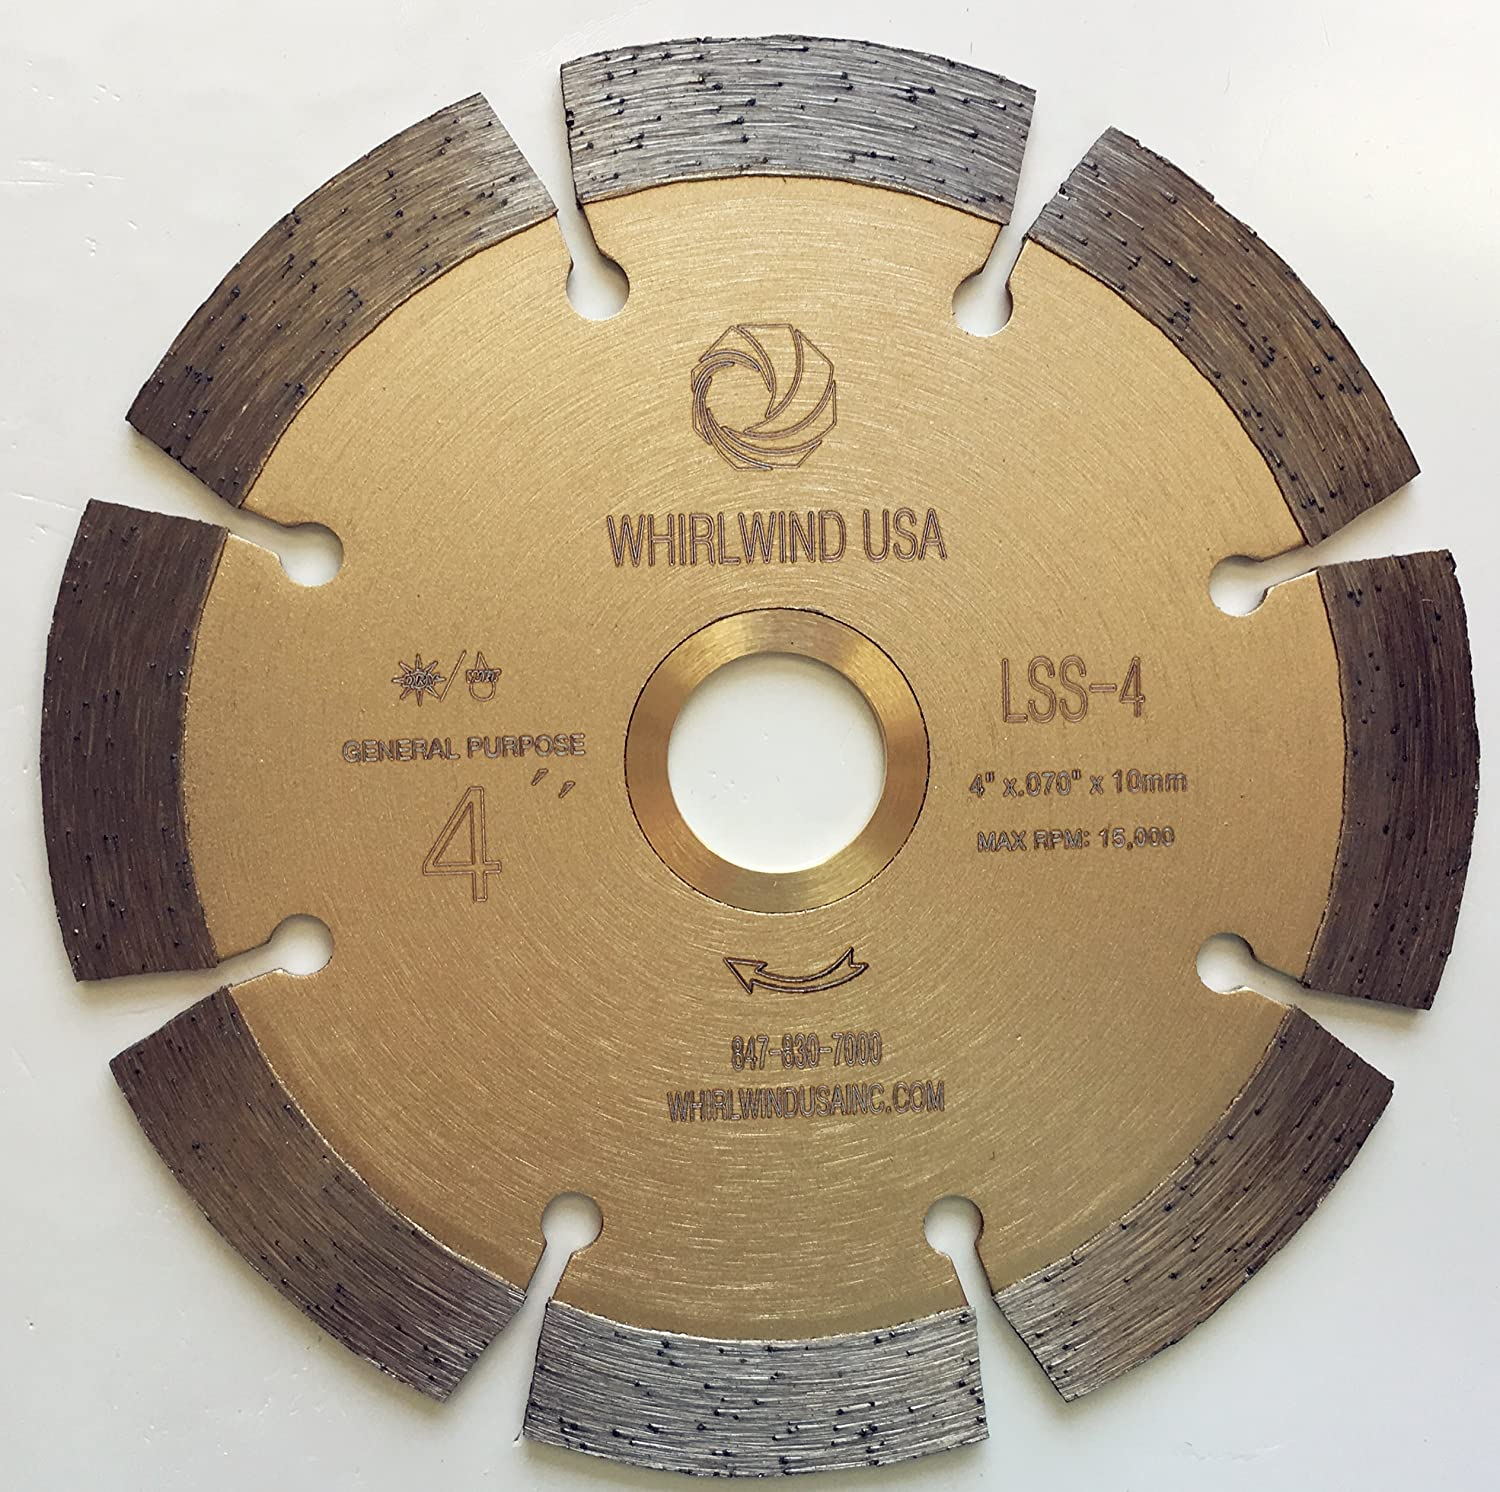 Whirlwind USA LSS 4 in. Dry or Wet Cutting General Purpose Power Saw Segmented Diamond Blades for Masonry Brick/Block Pavers Concrete Stone (Factory Direct Sale) (4